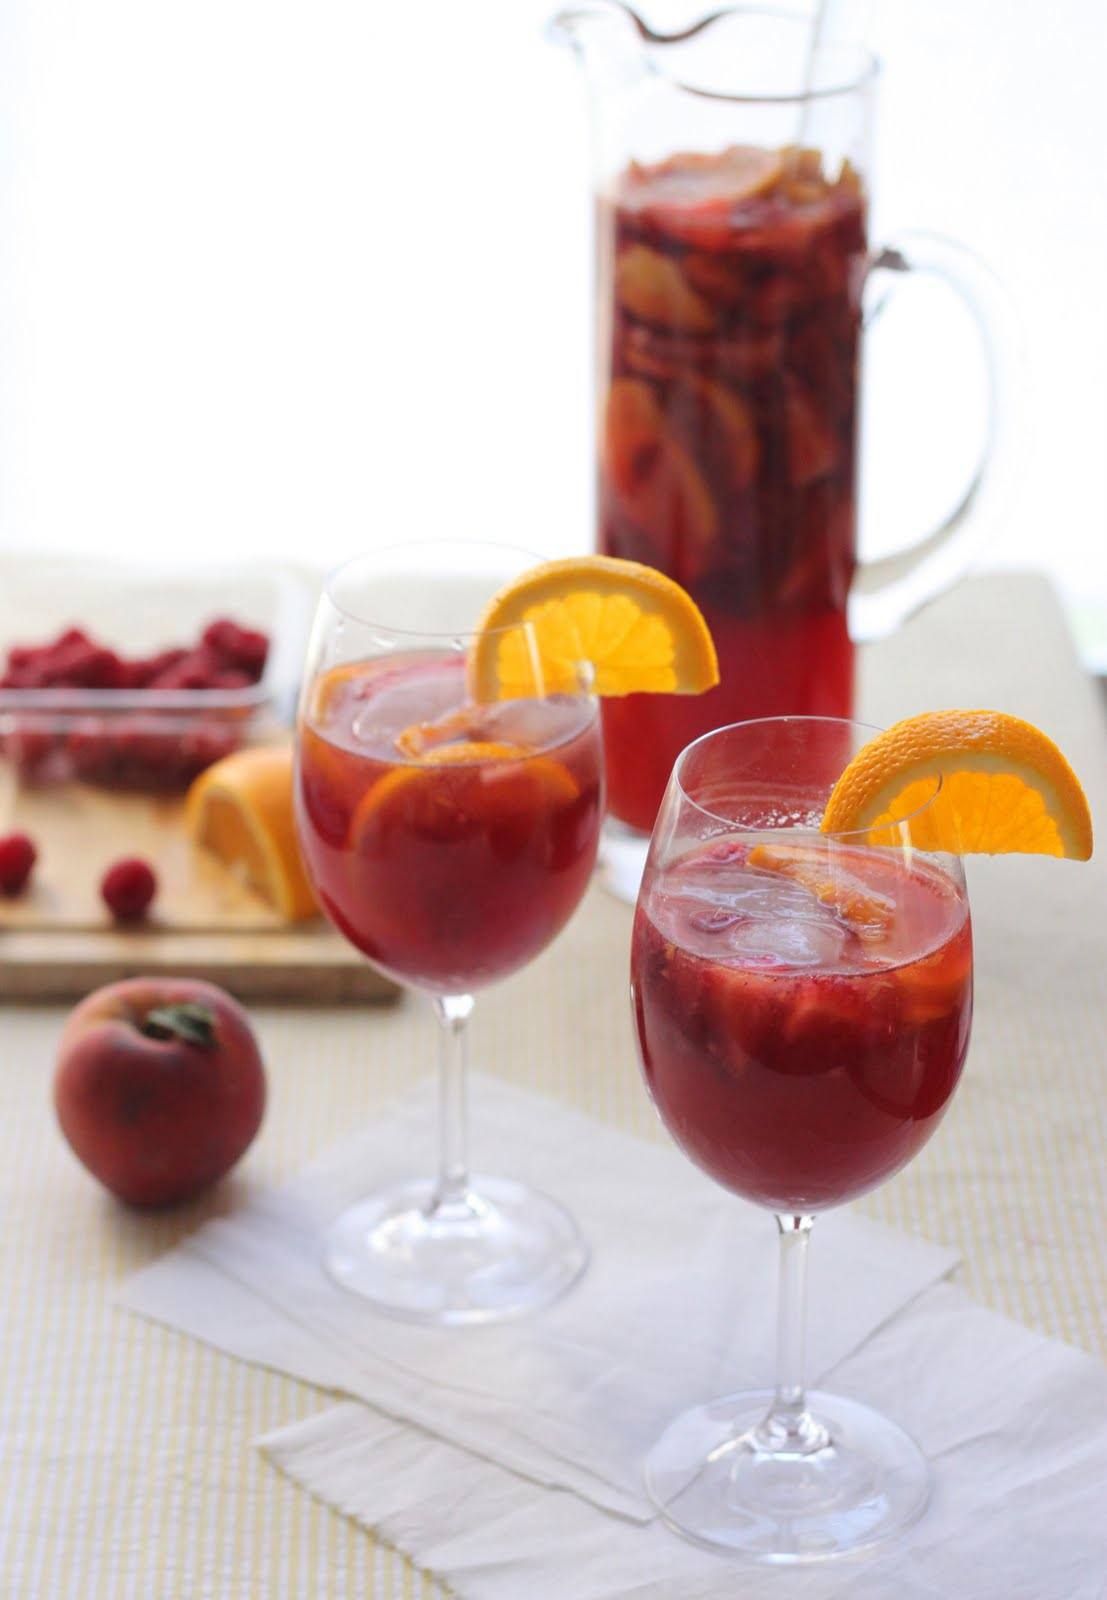 The Cilantropist: A Recipe for Rose Sangria